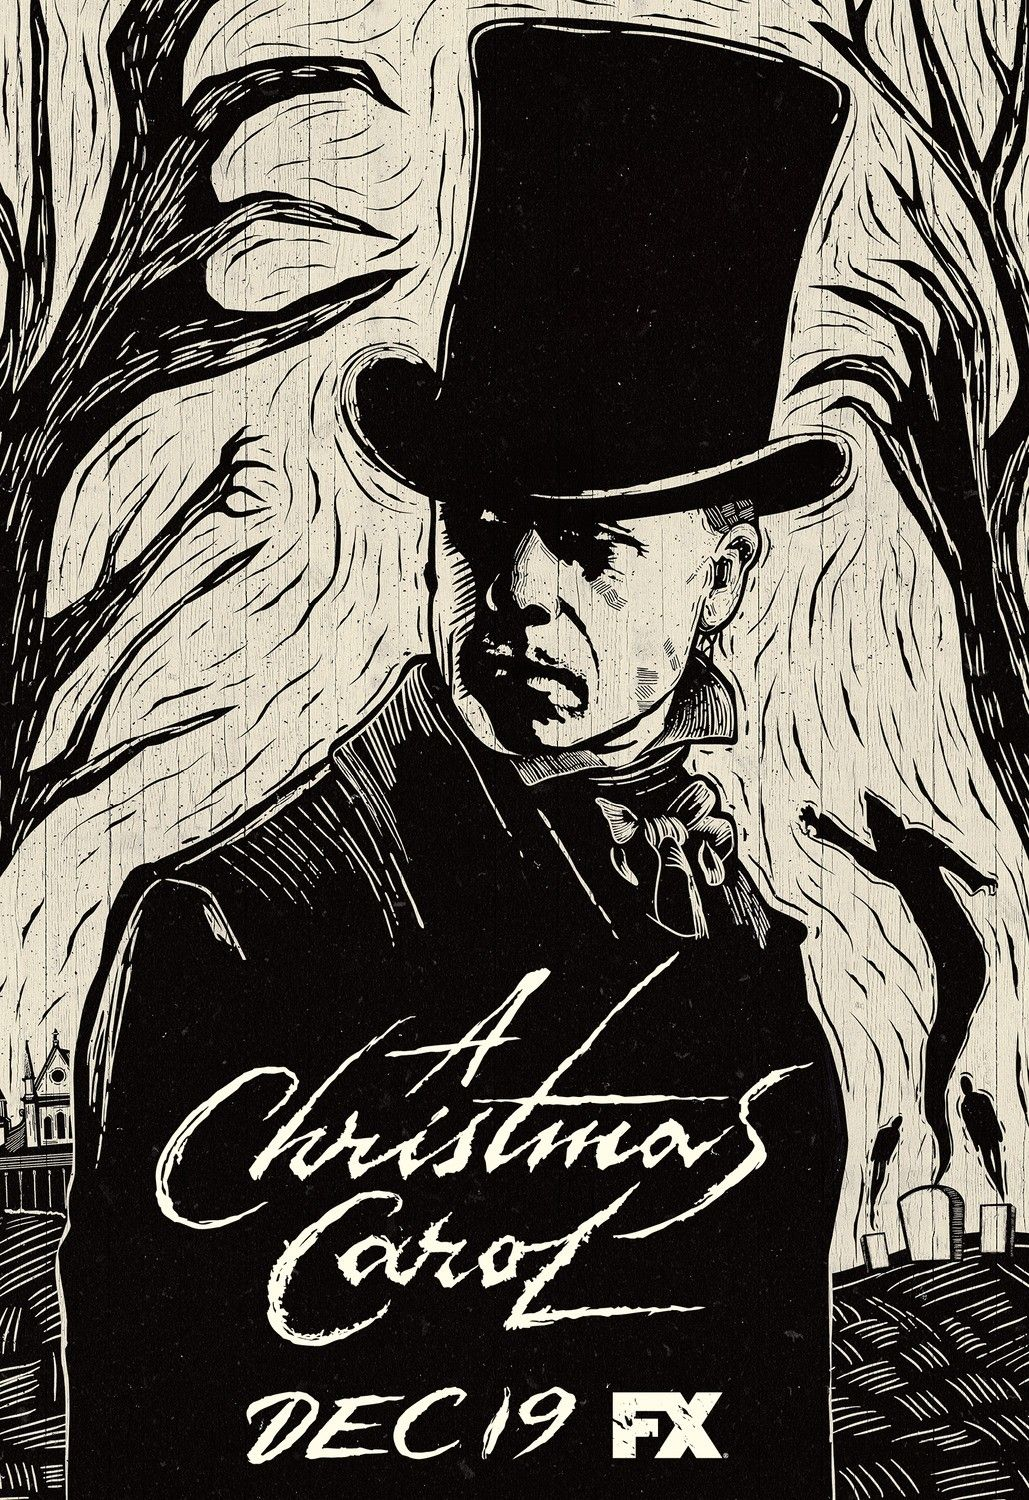 New poster for the new FX miniseries A CHRISTMAS CAROL. | Coral de natal, Guy pearce, Christmas ...